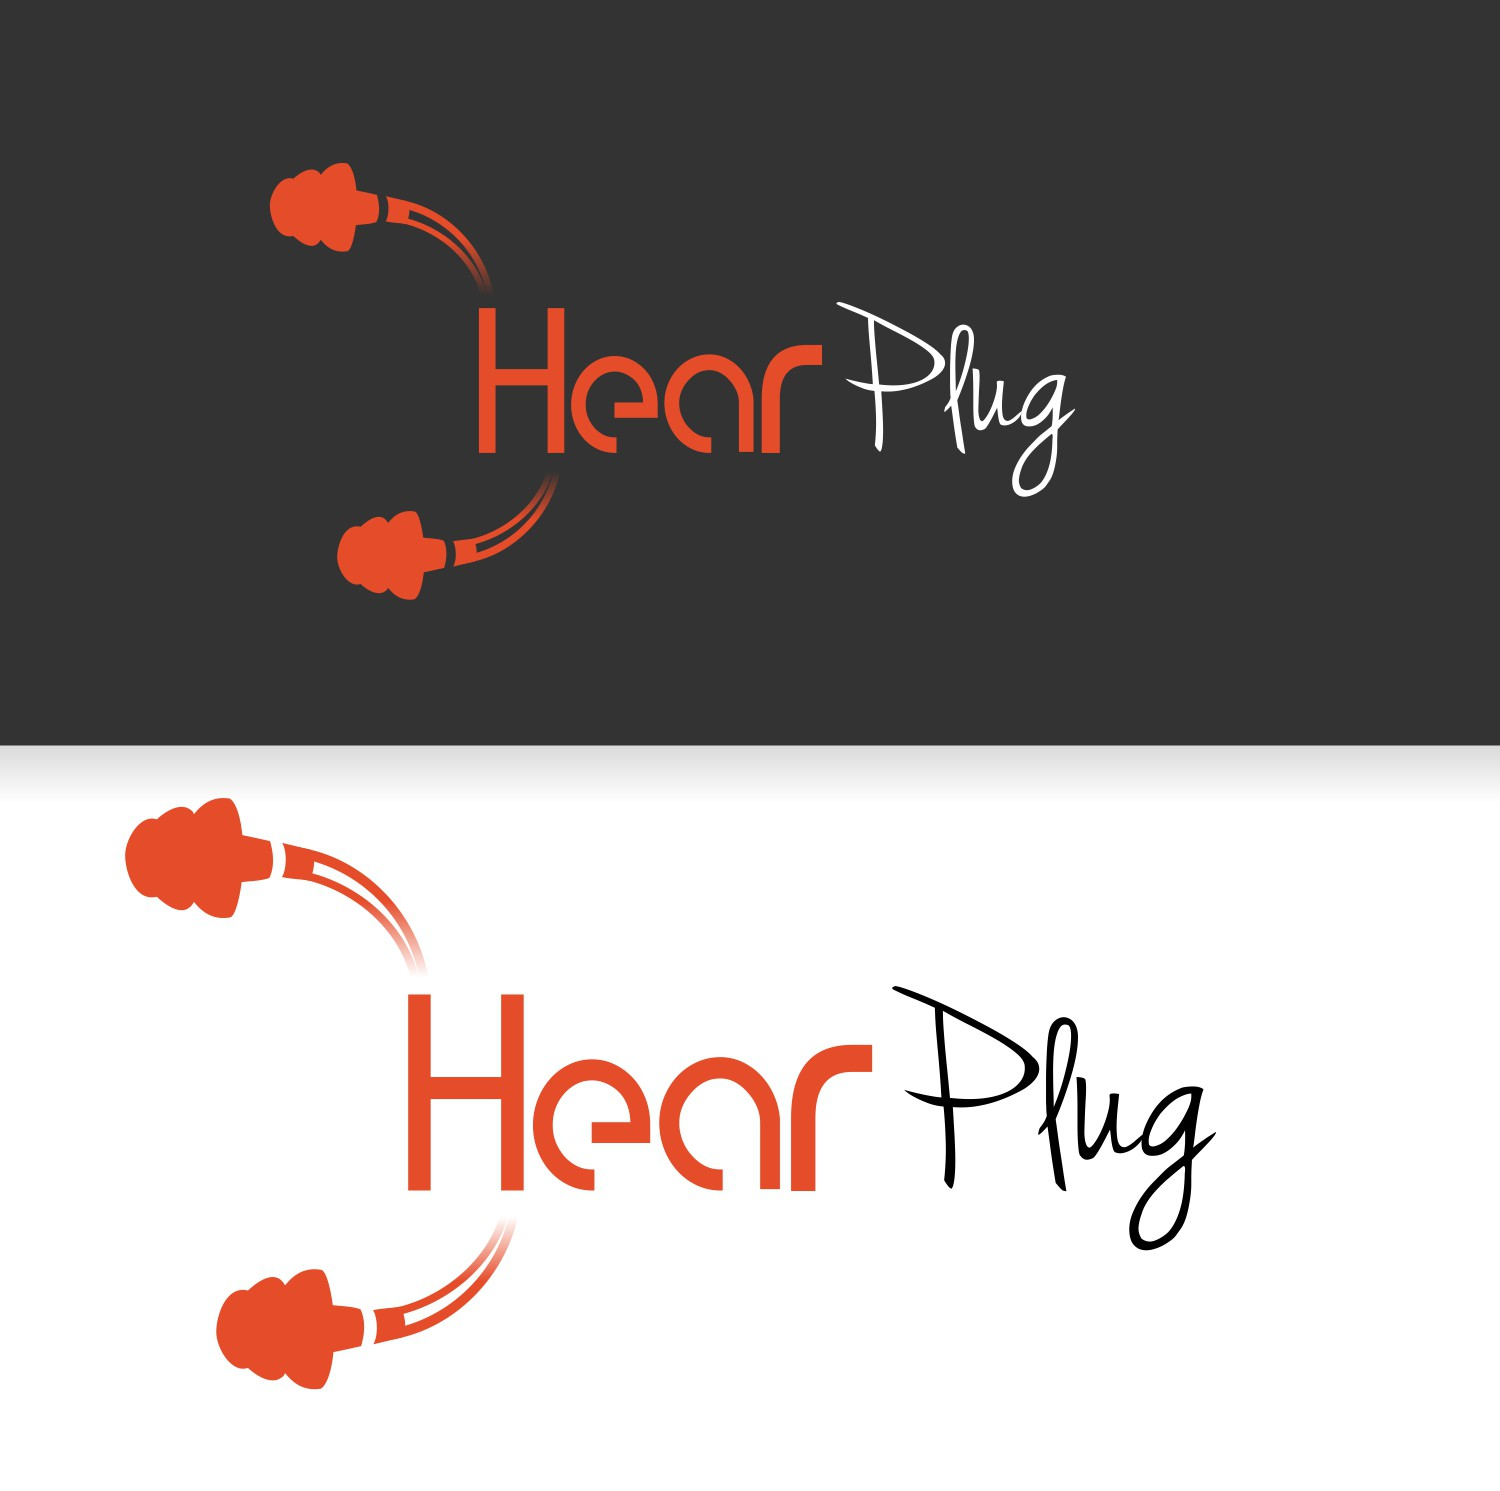 Logo design by zelyan